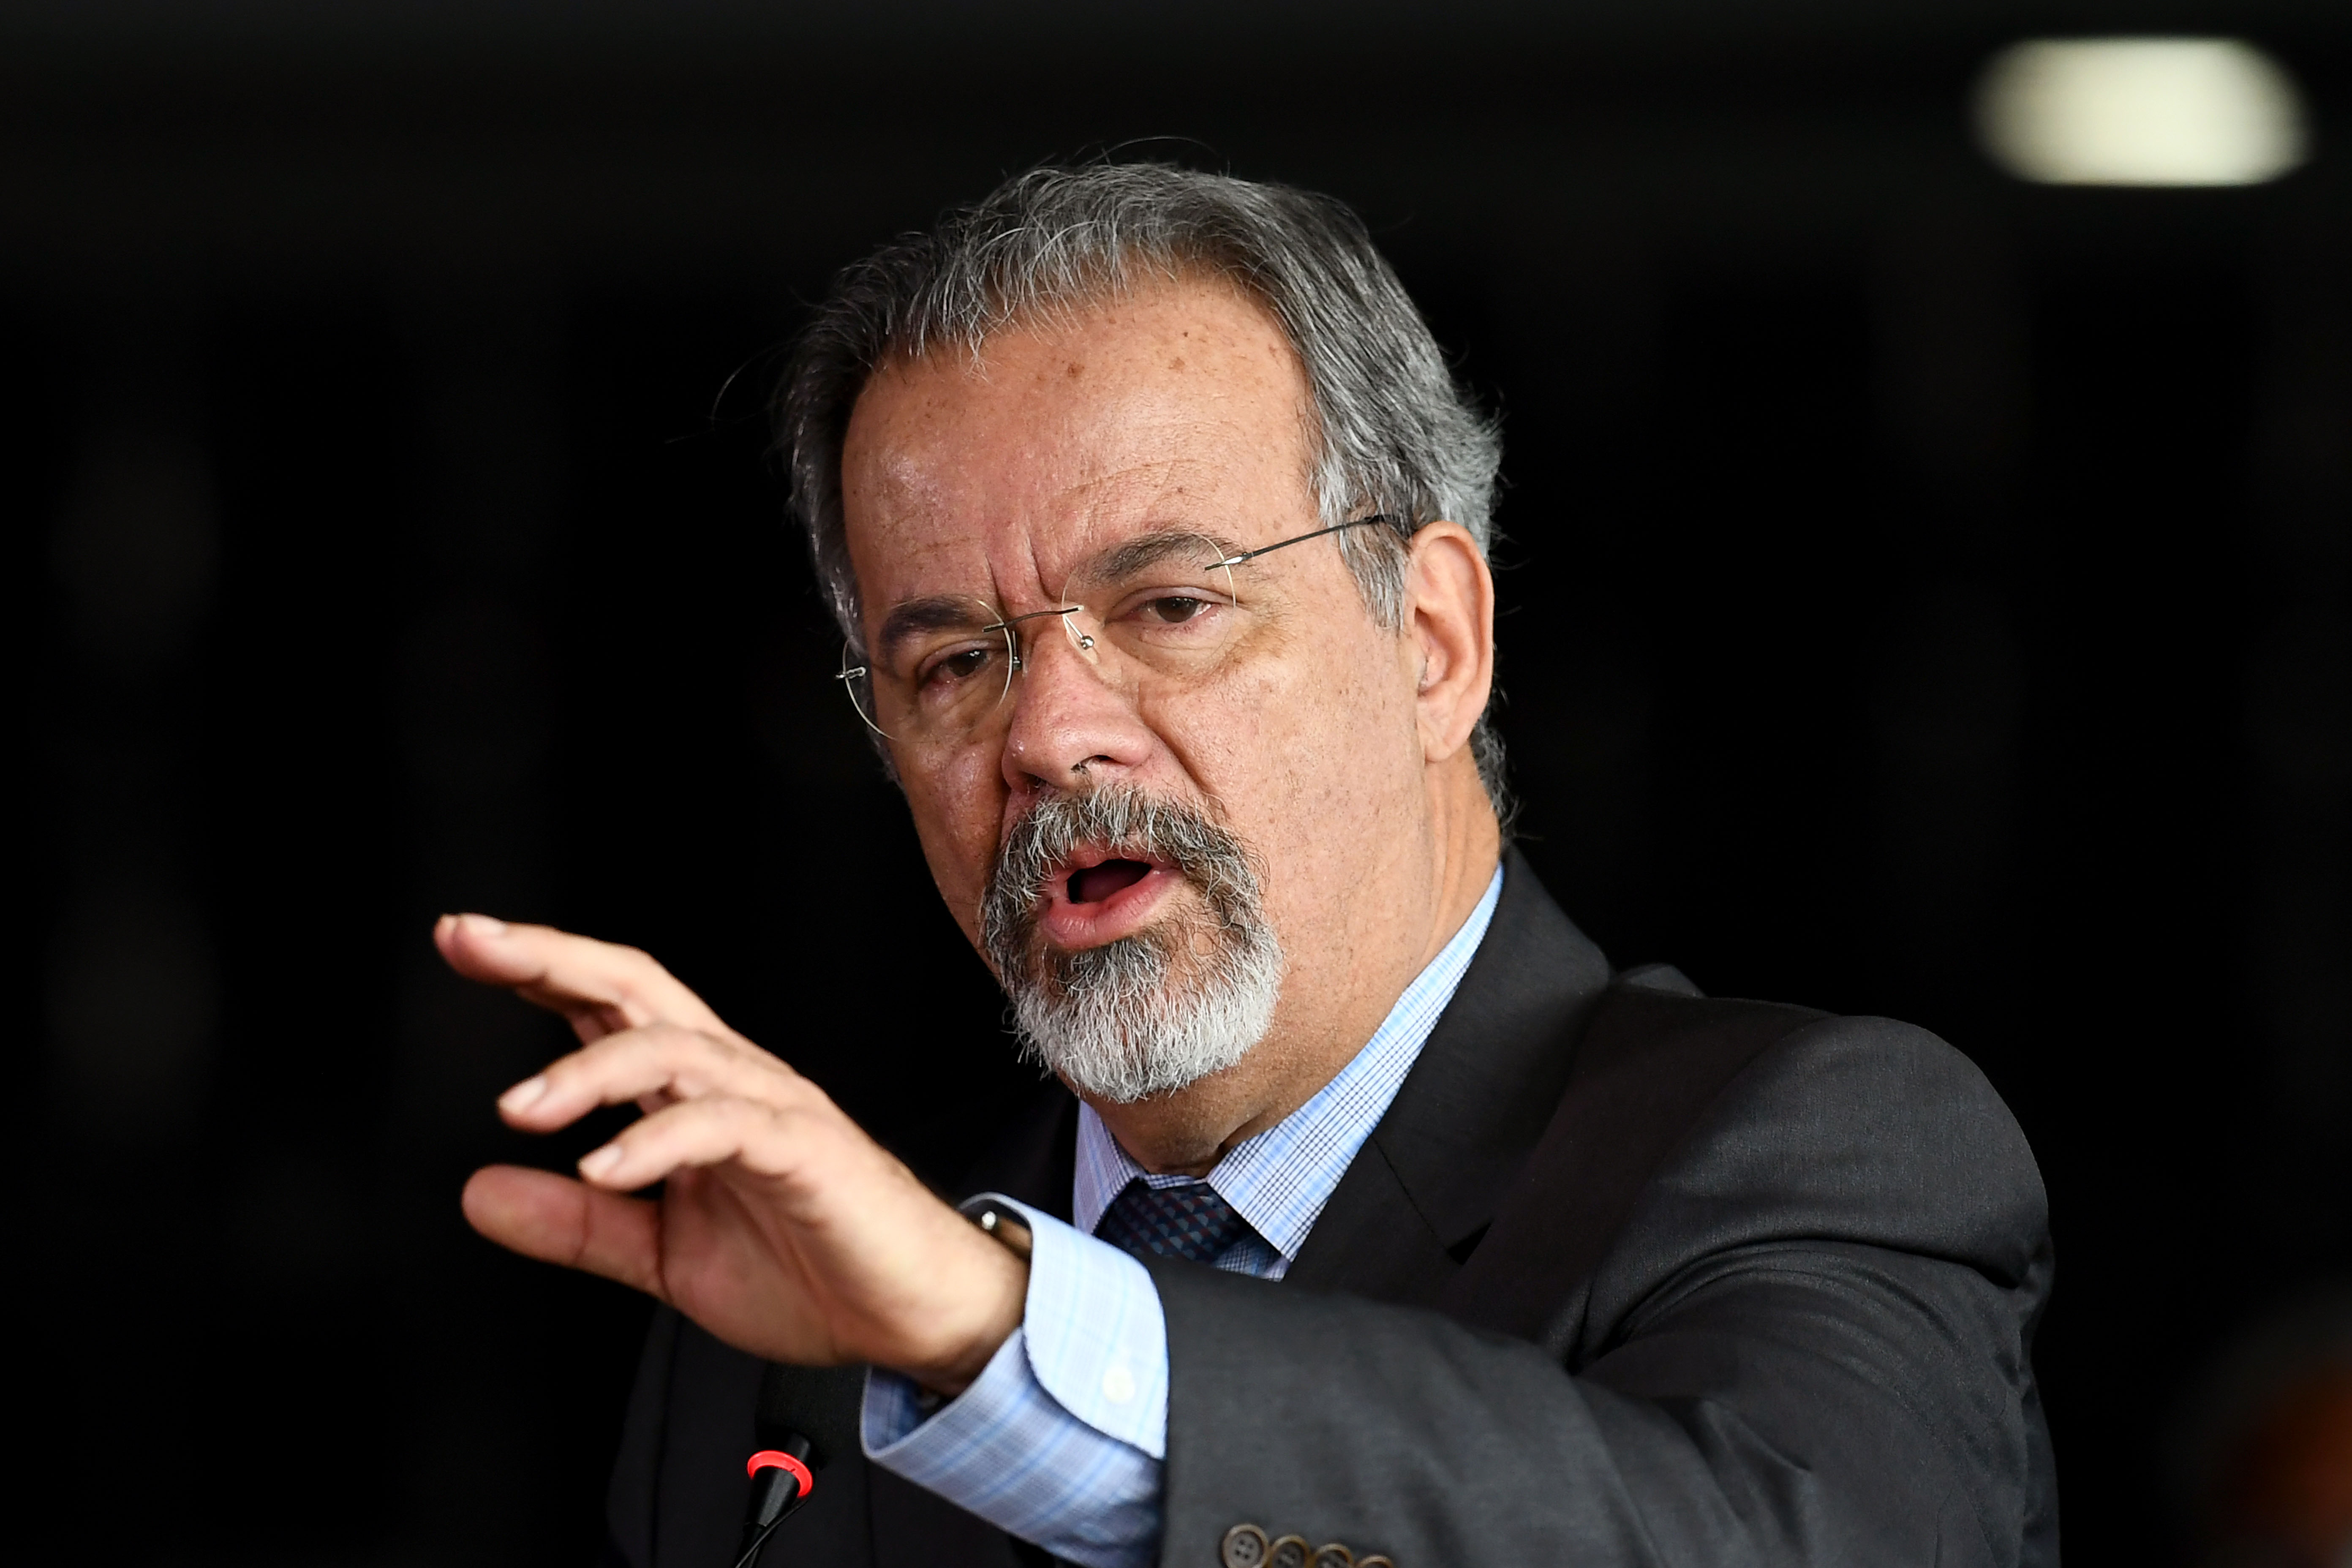 Brazil's Minister of Public Security Raul Jungmann delivers a speech during Brazil's Federal Police new Director General Rogerio Galloro inauguration ceremony in Brasilia, on March 2, 2018.Galloro replaces Fernando Segovia, dismissed from office after three months, due to controversial declarations within the government. / AFP PHOTO / EVARISTO SA        (Photo credit should read EVARISTO SA/AFP via Getty Images)